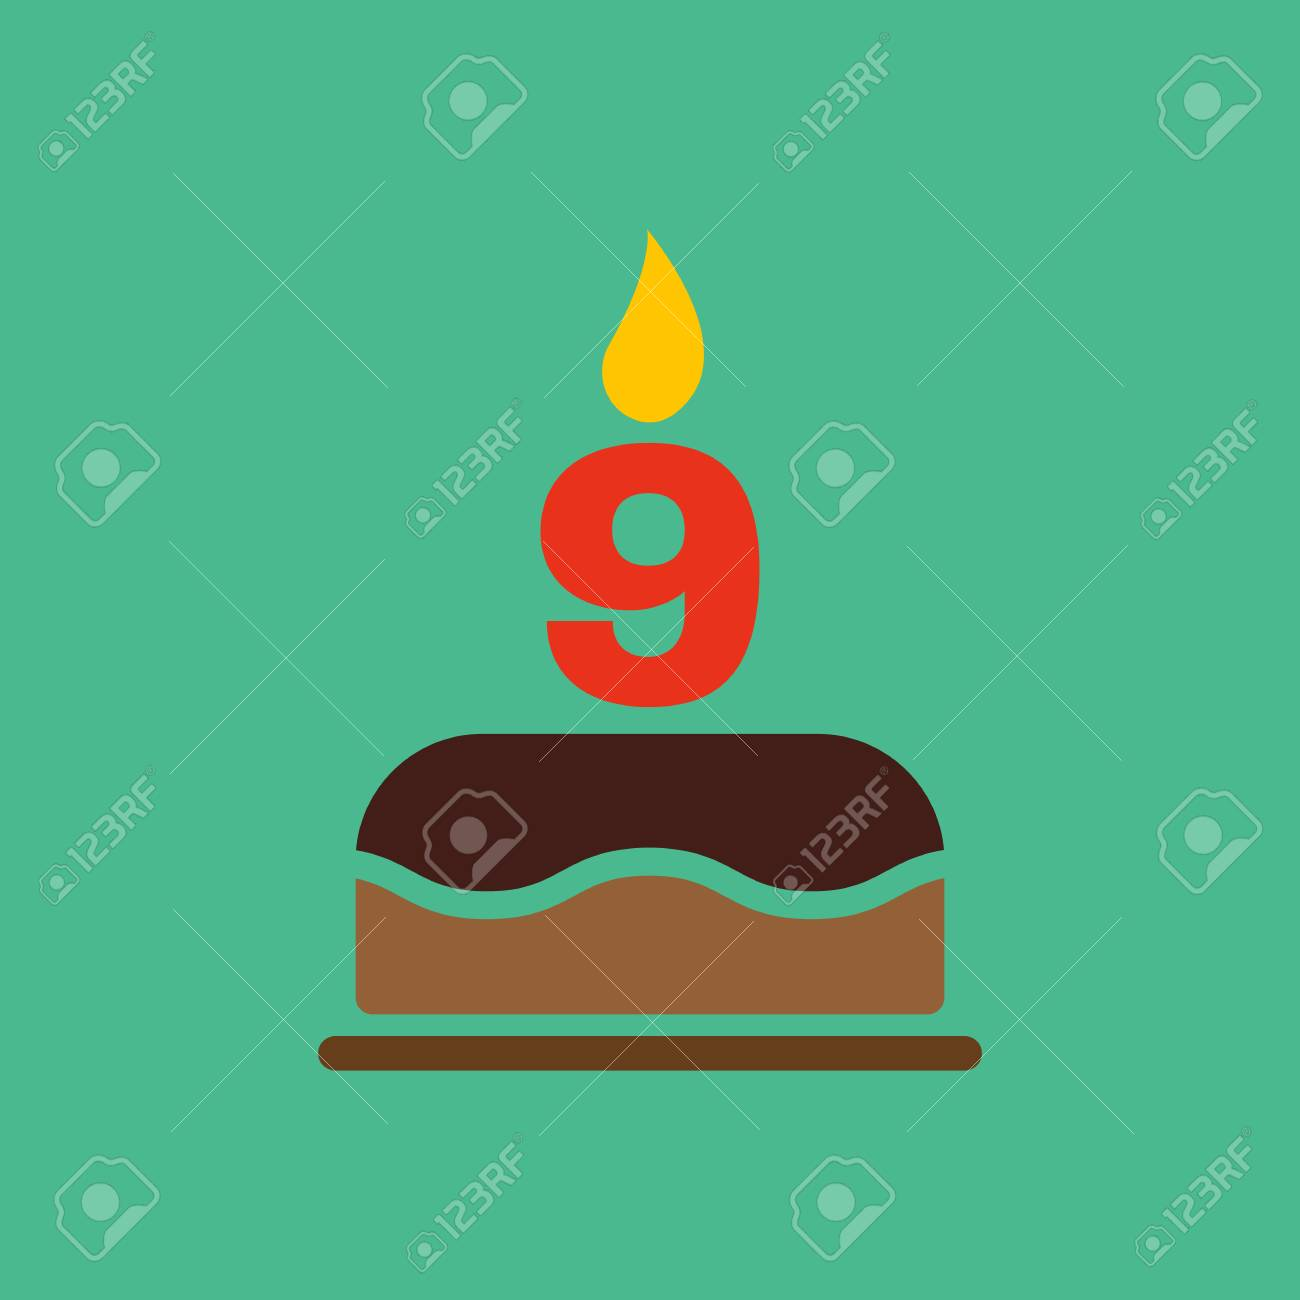 The Birthday Cake With Candles In Form Of Number 9 Icon Symbol